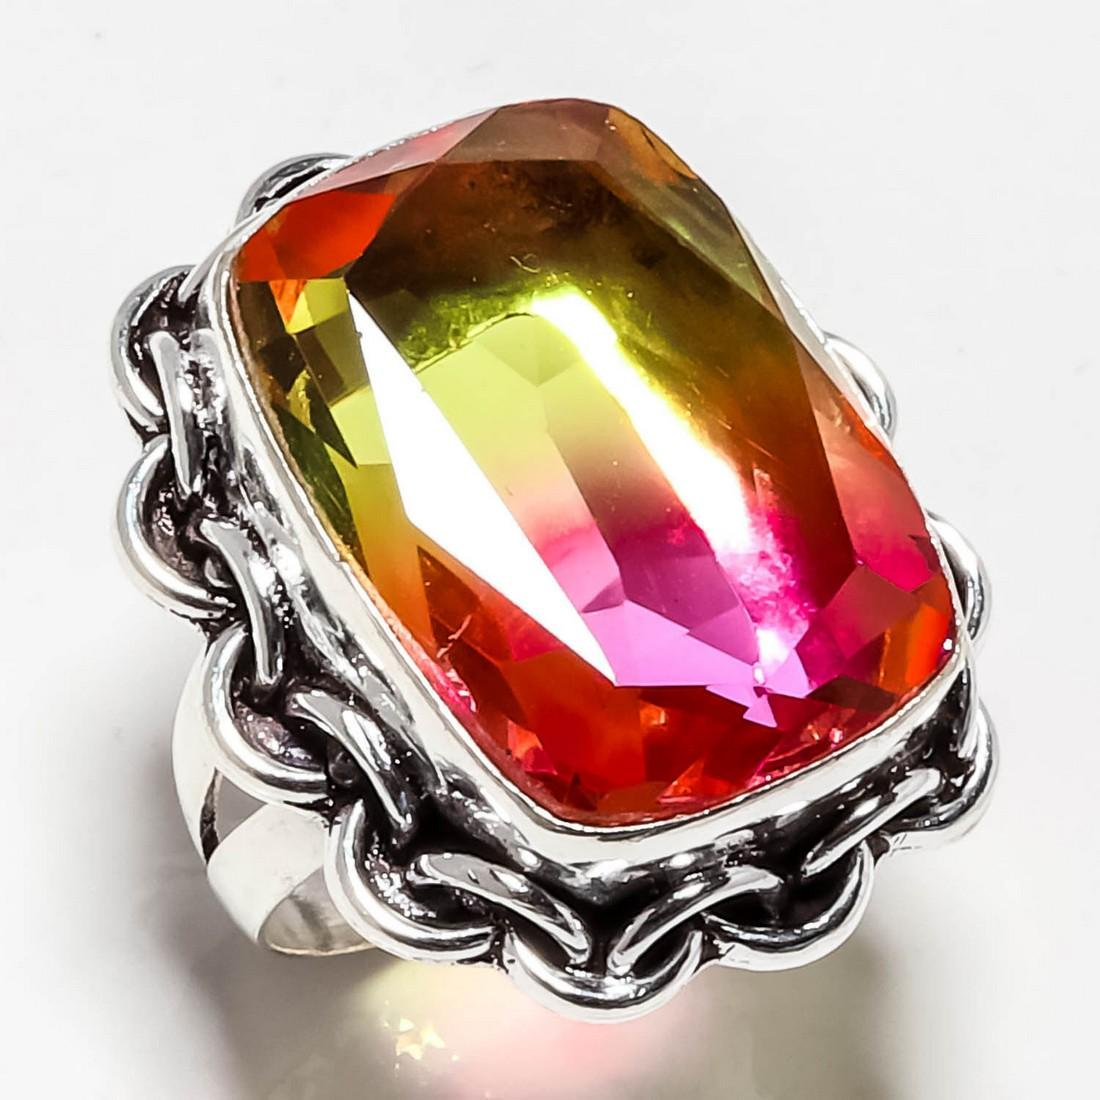 BI-COLOR TOURMALINE GEMSTONE 925 SILVER RING